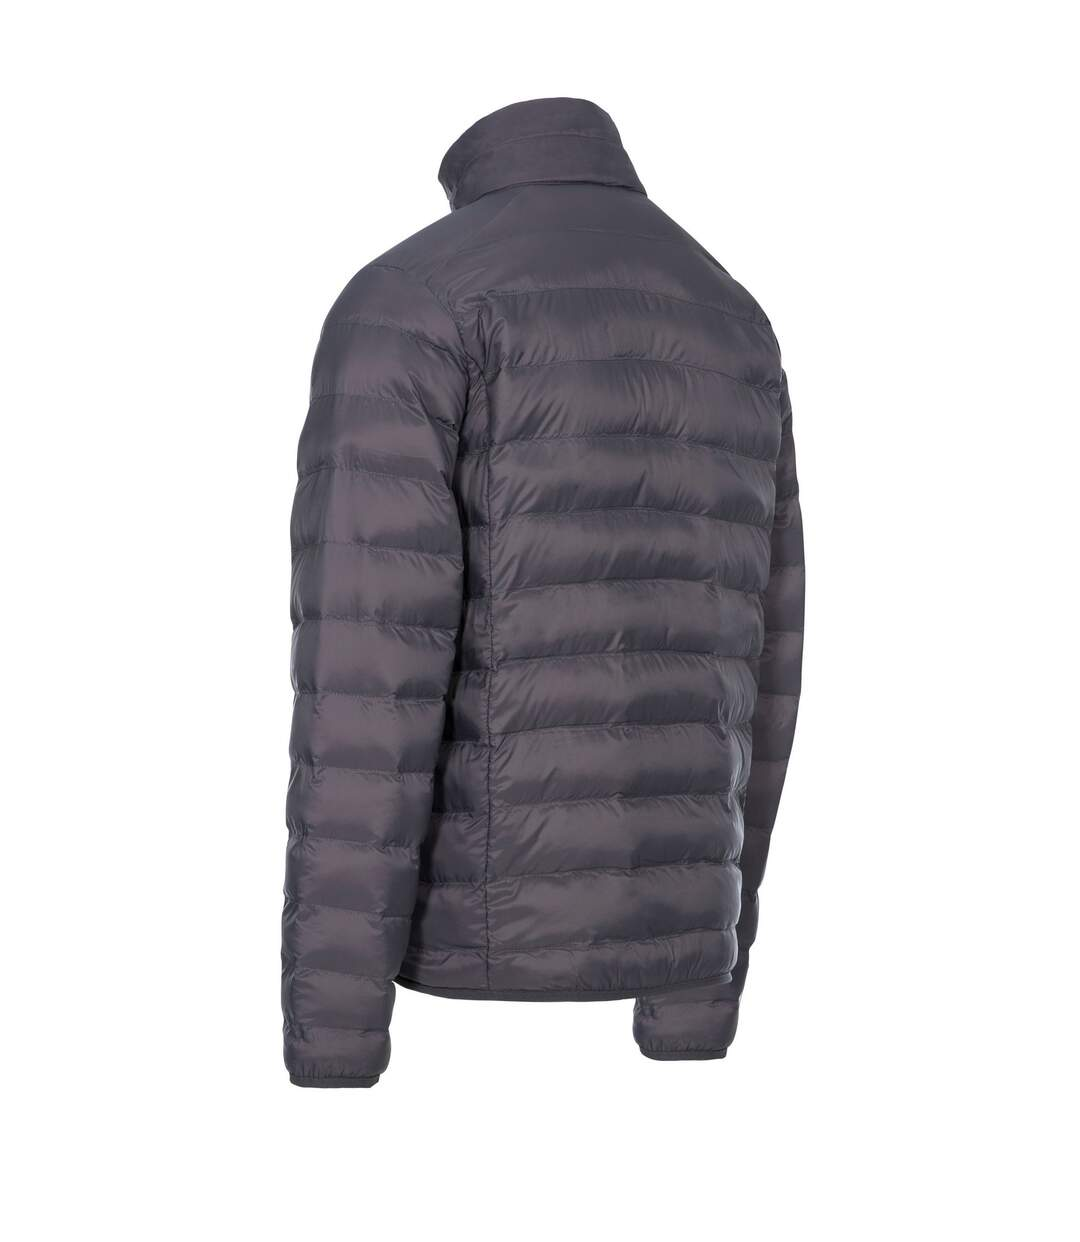 Trespass Mens Howat Casual Jacket (Dark Grey) - UTTP4748